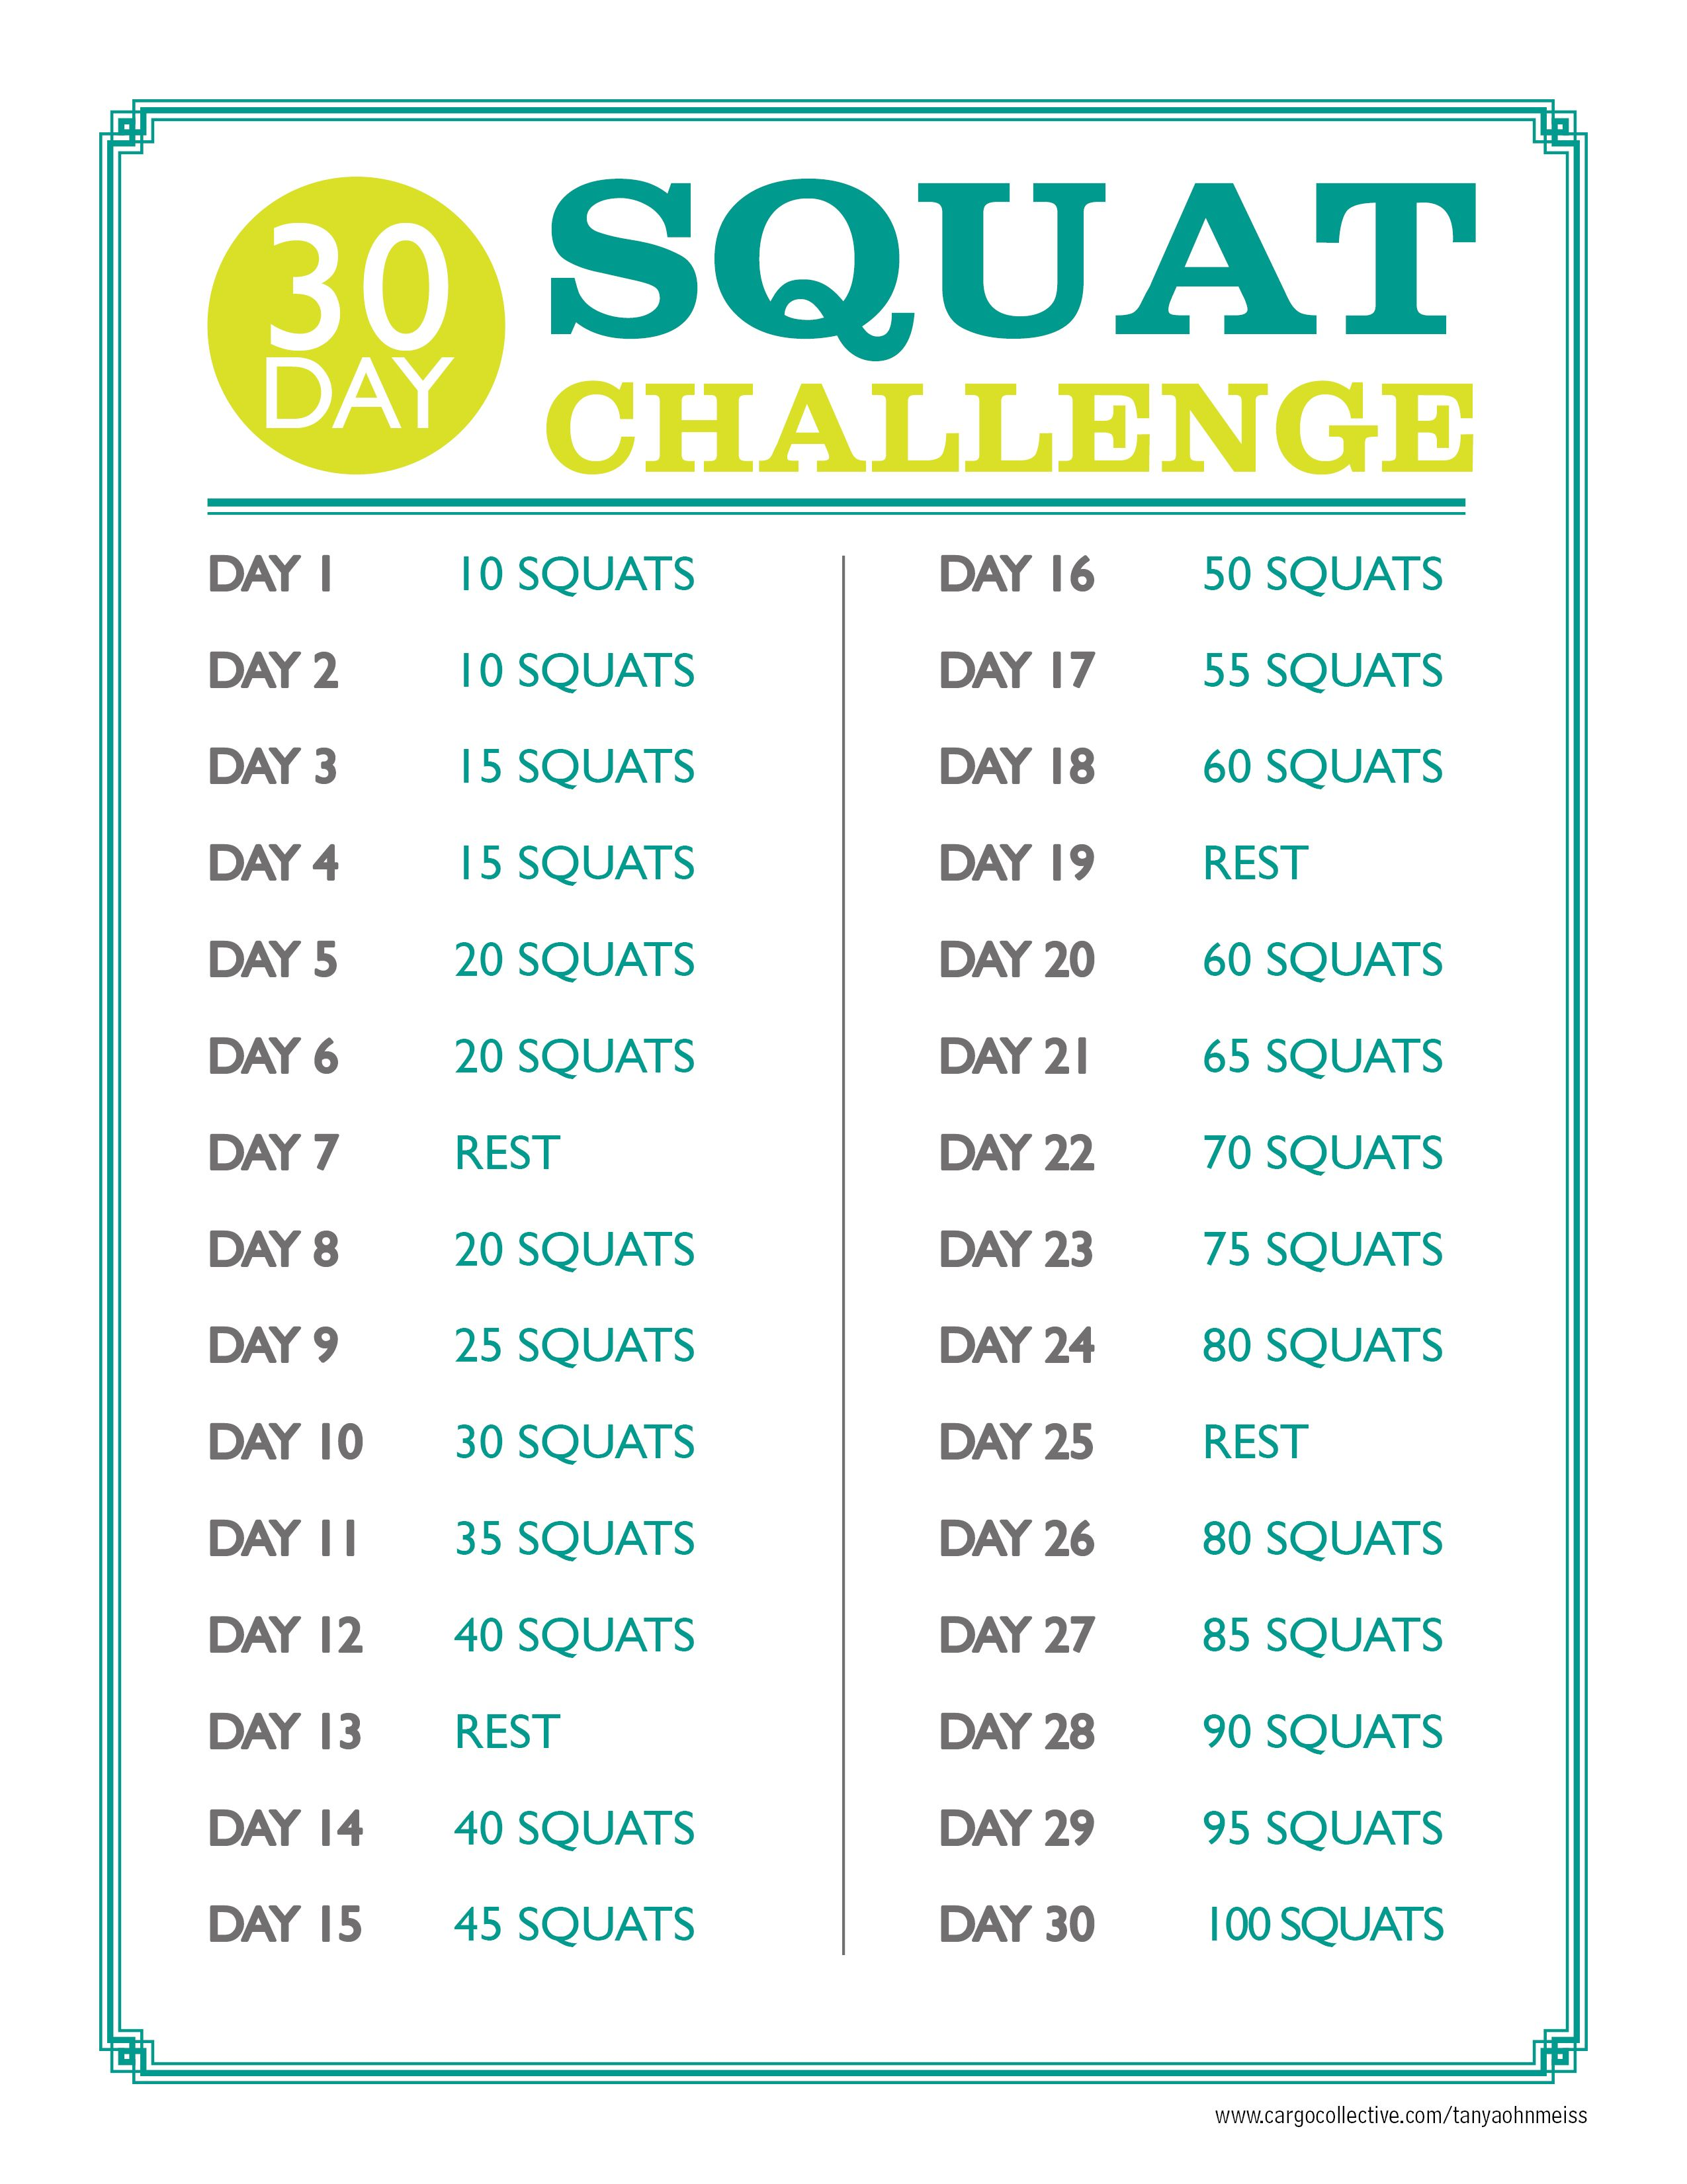 30 Day Squat Challenge Work Your Way Up To Doing 100